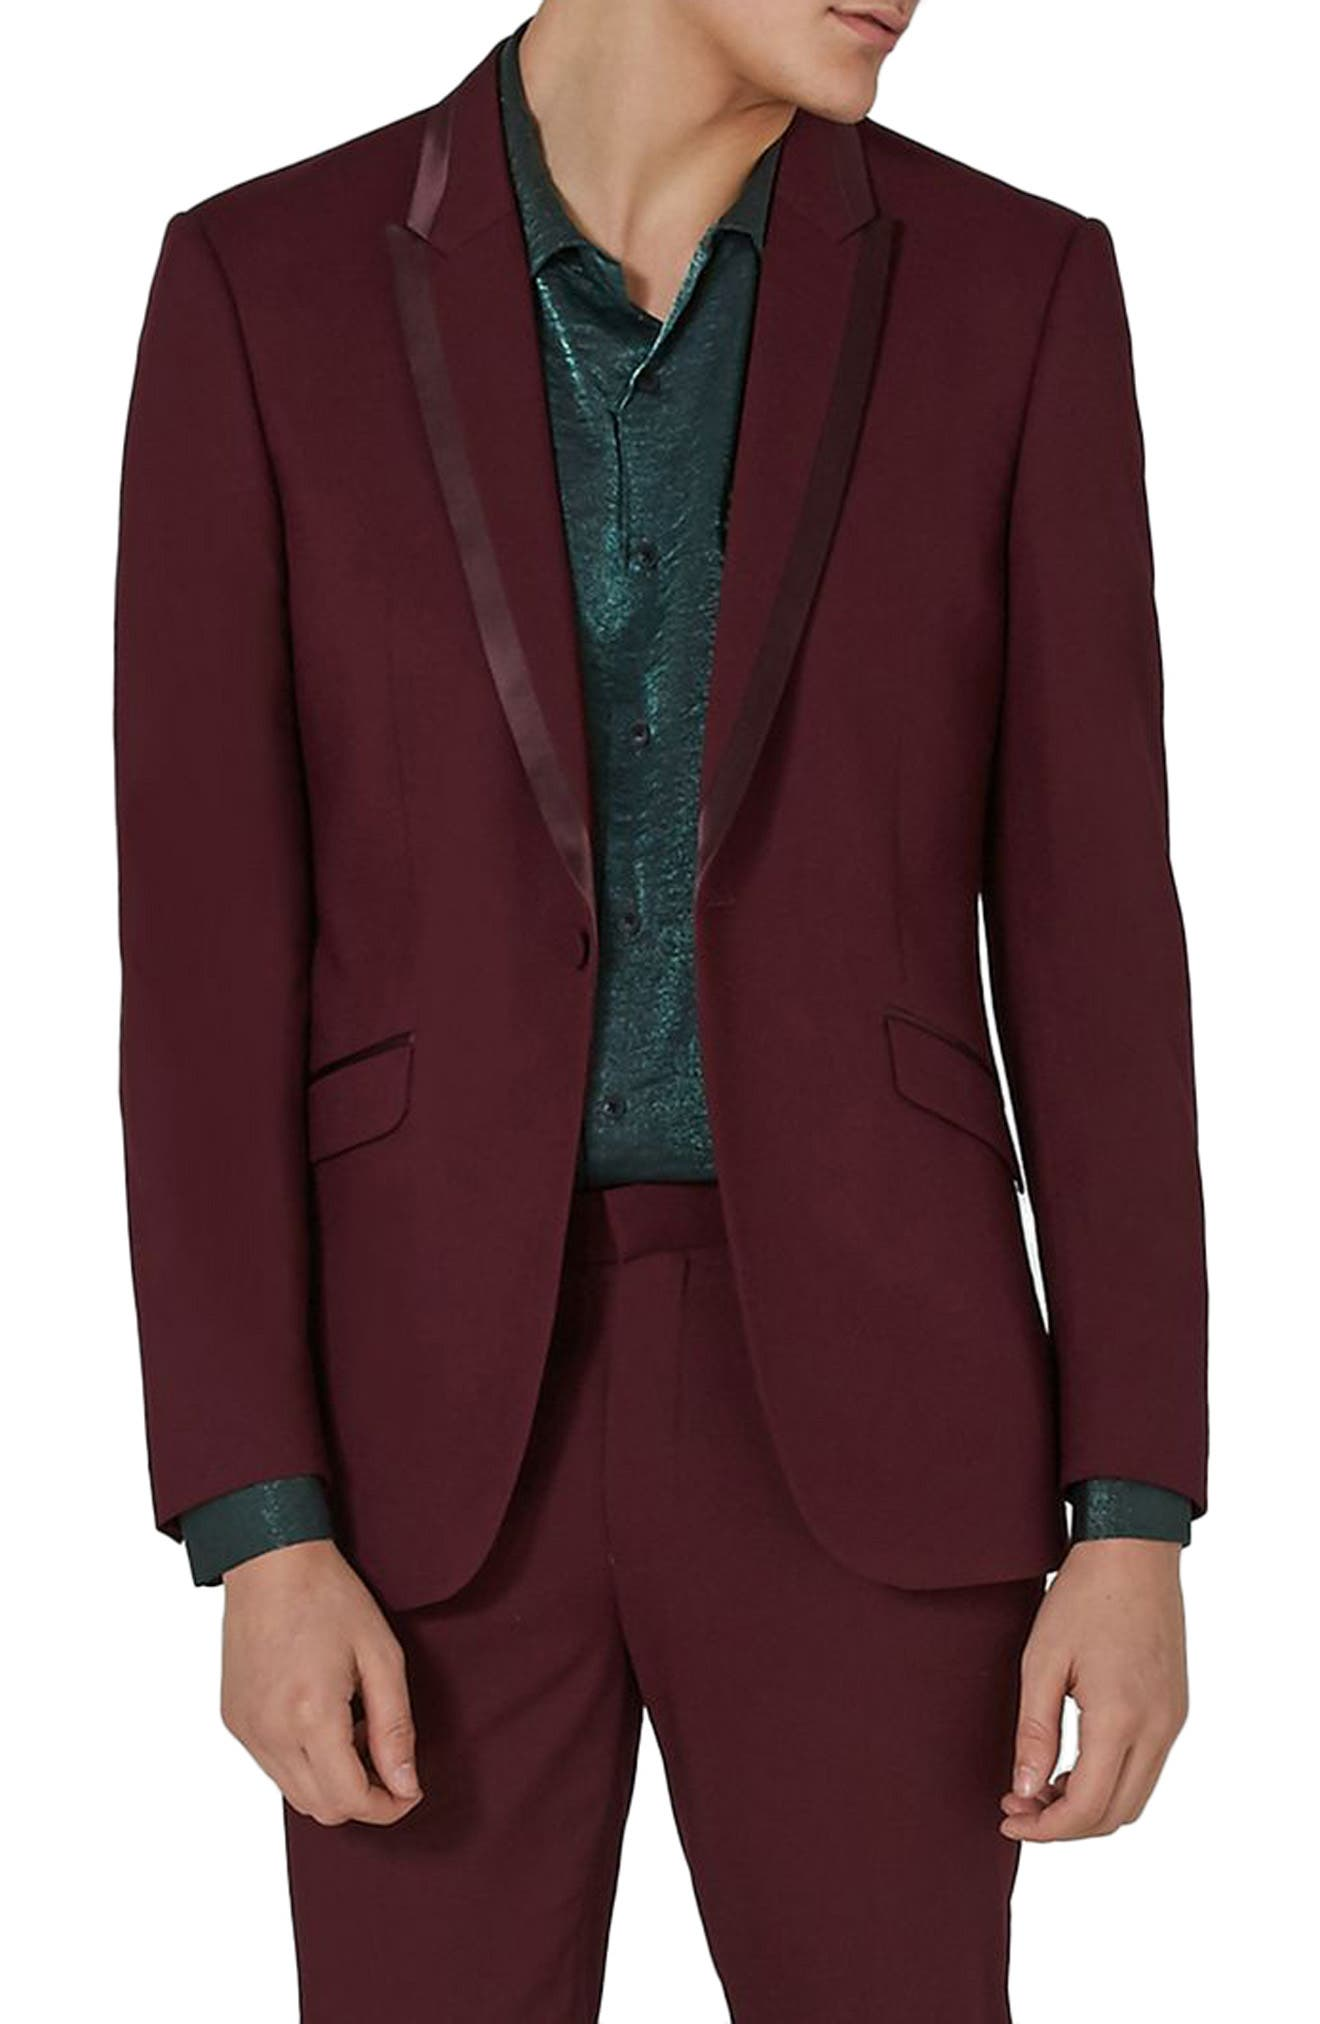 Skinny Fit Burgundy Tuxedo Jacket,                             Main thumbnail 1, color,